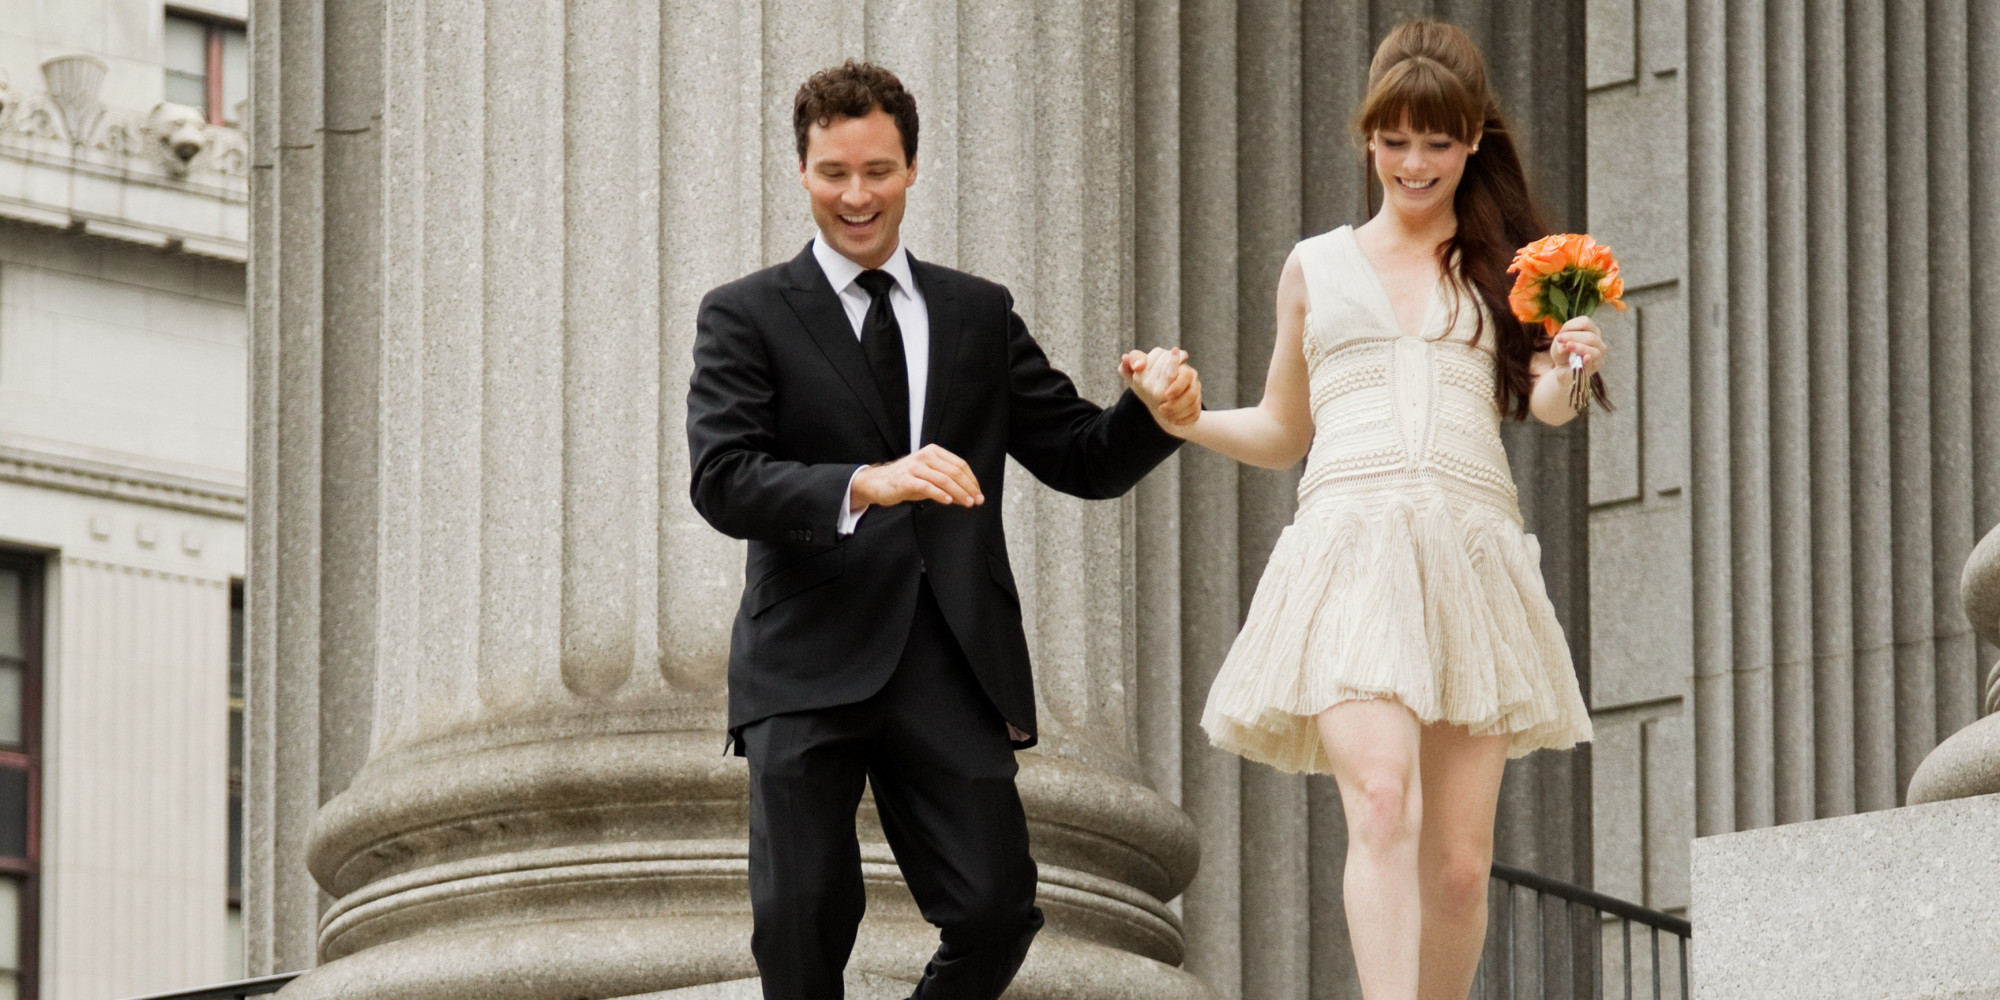 New York City Hall Wedding Ideas